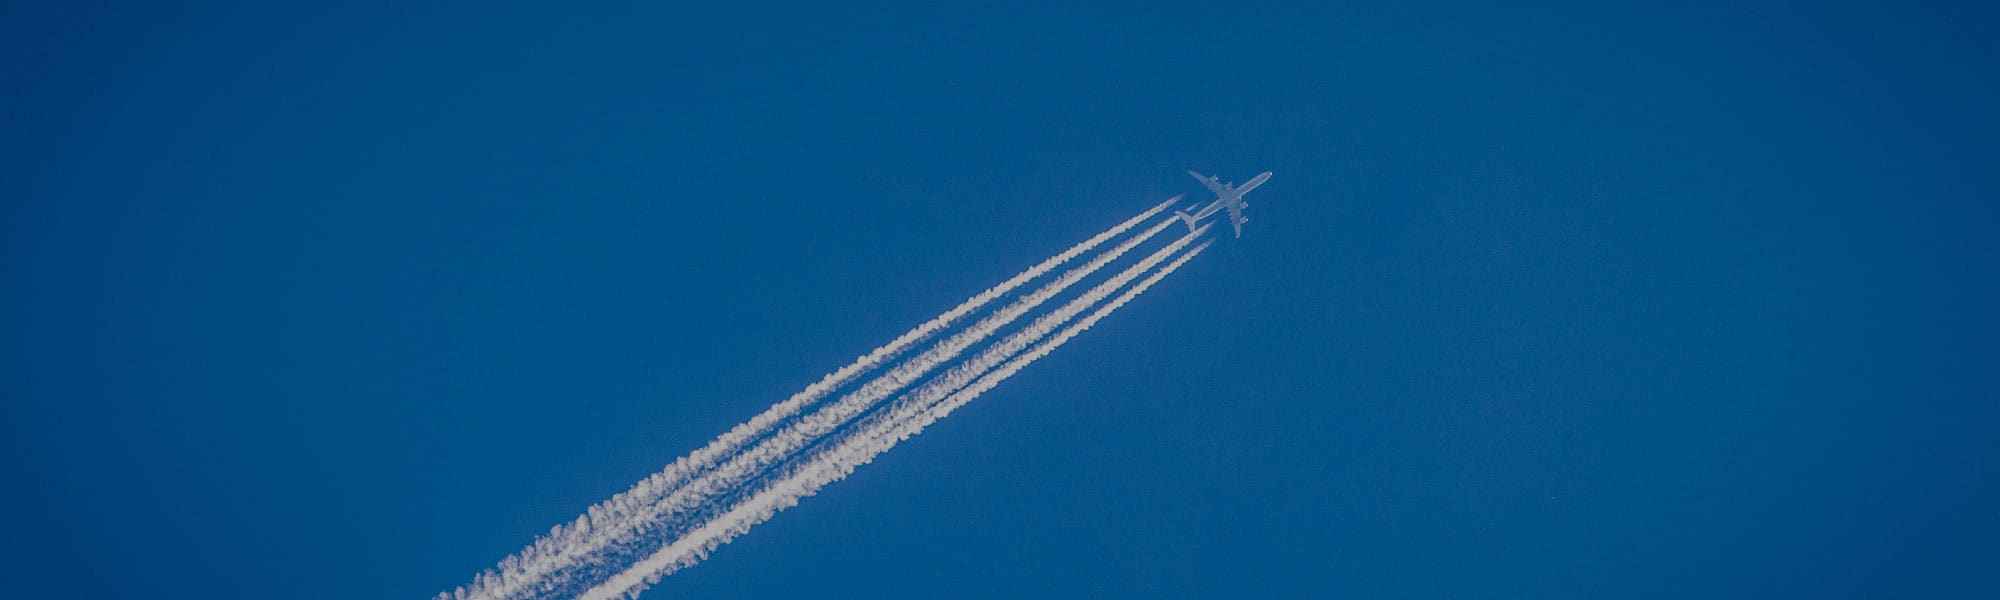 What Are Aircraft Fuel Suppliers Doing to Decarbonise?